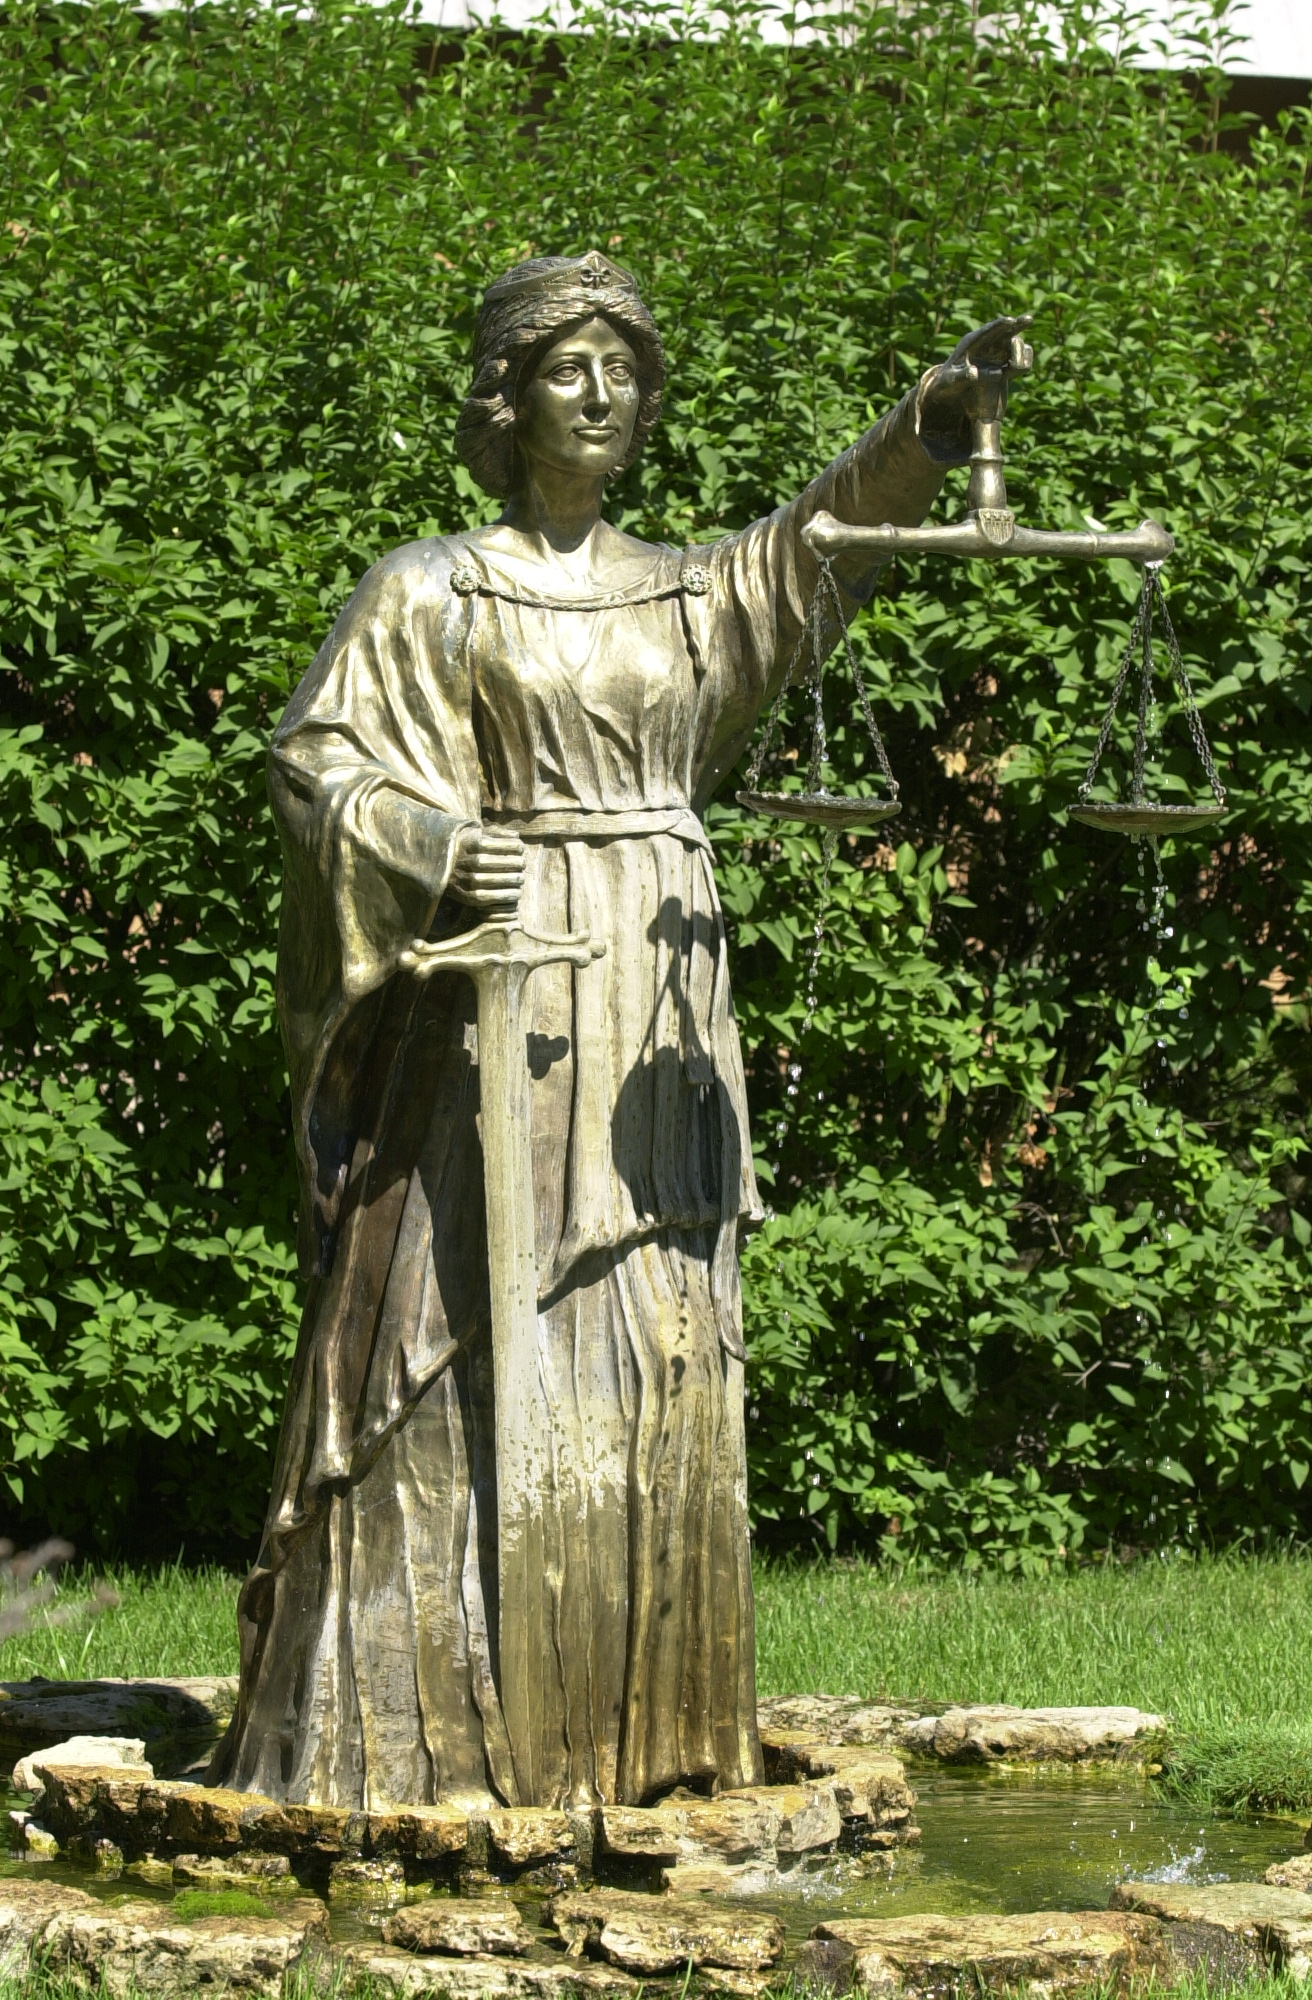 """Lady Portia, Goddess of Justice"", bronze fountain, life-size, Maplewood, MN, 1987...my first sculpture and the life-changing moment of career transition from architectural designer to sculptor and artist. (photo by Dave Hrbacek)"